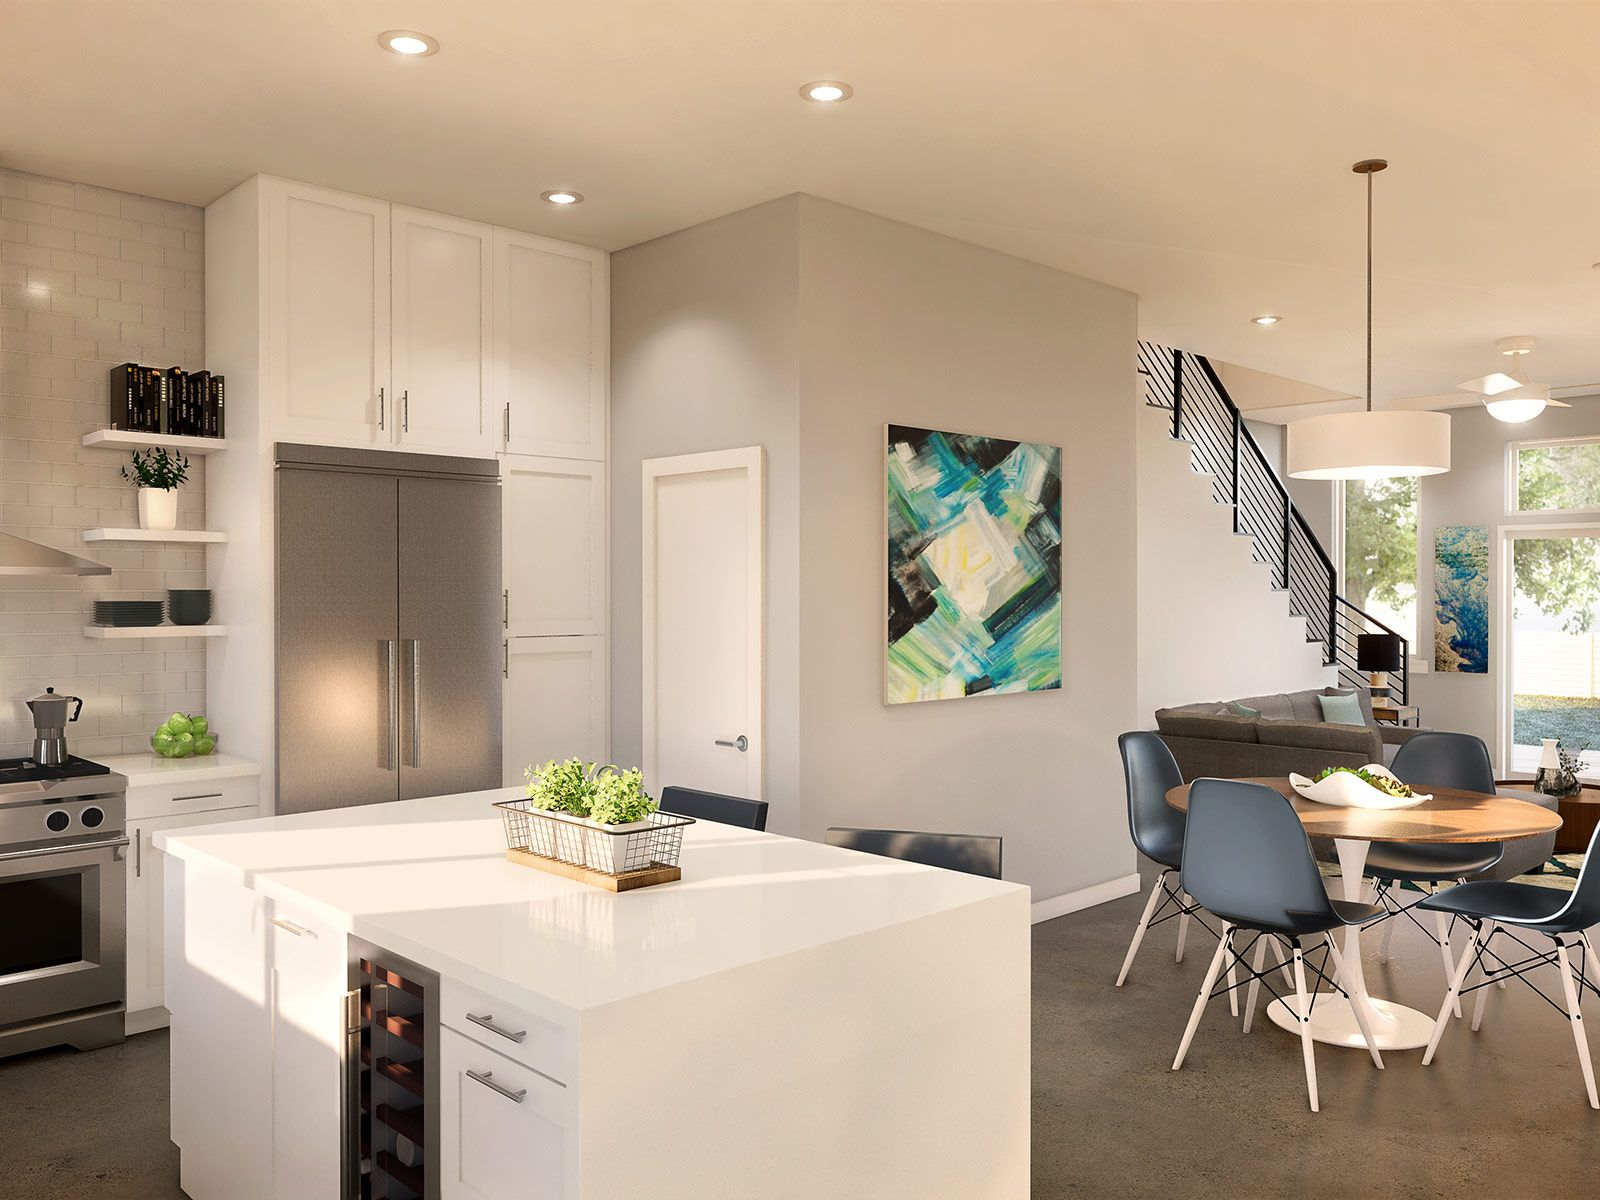 Townhome - Interior